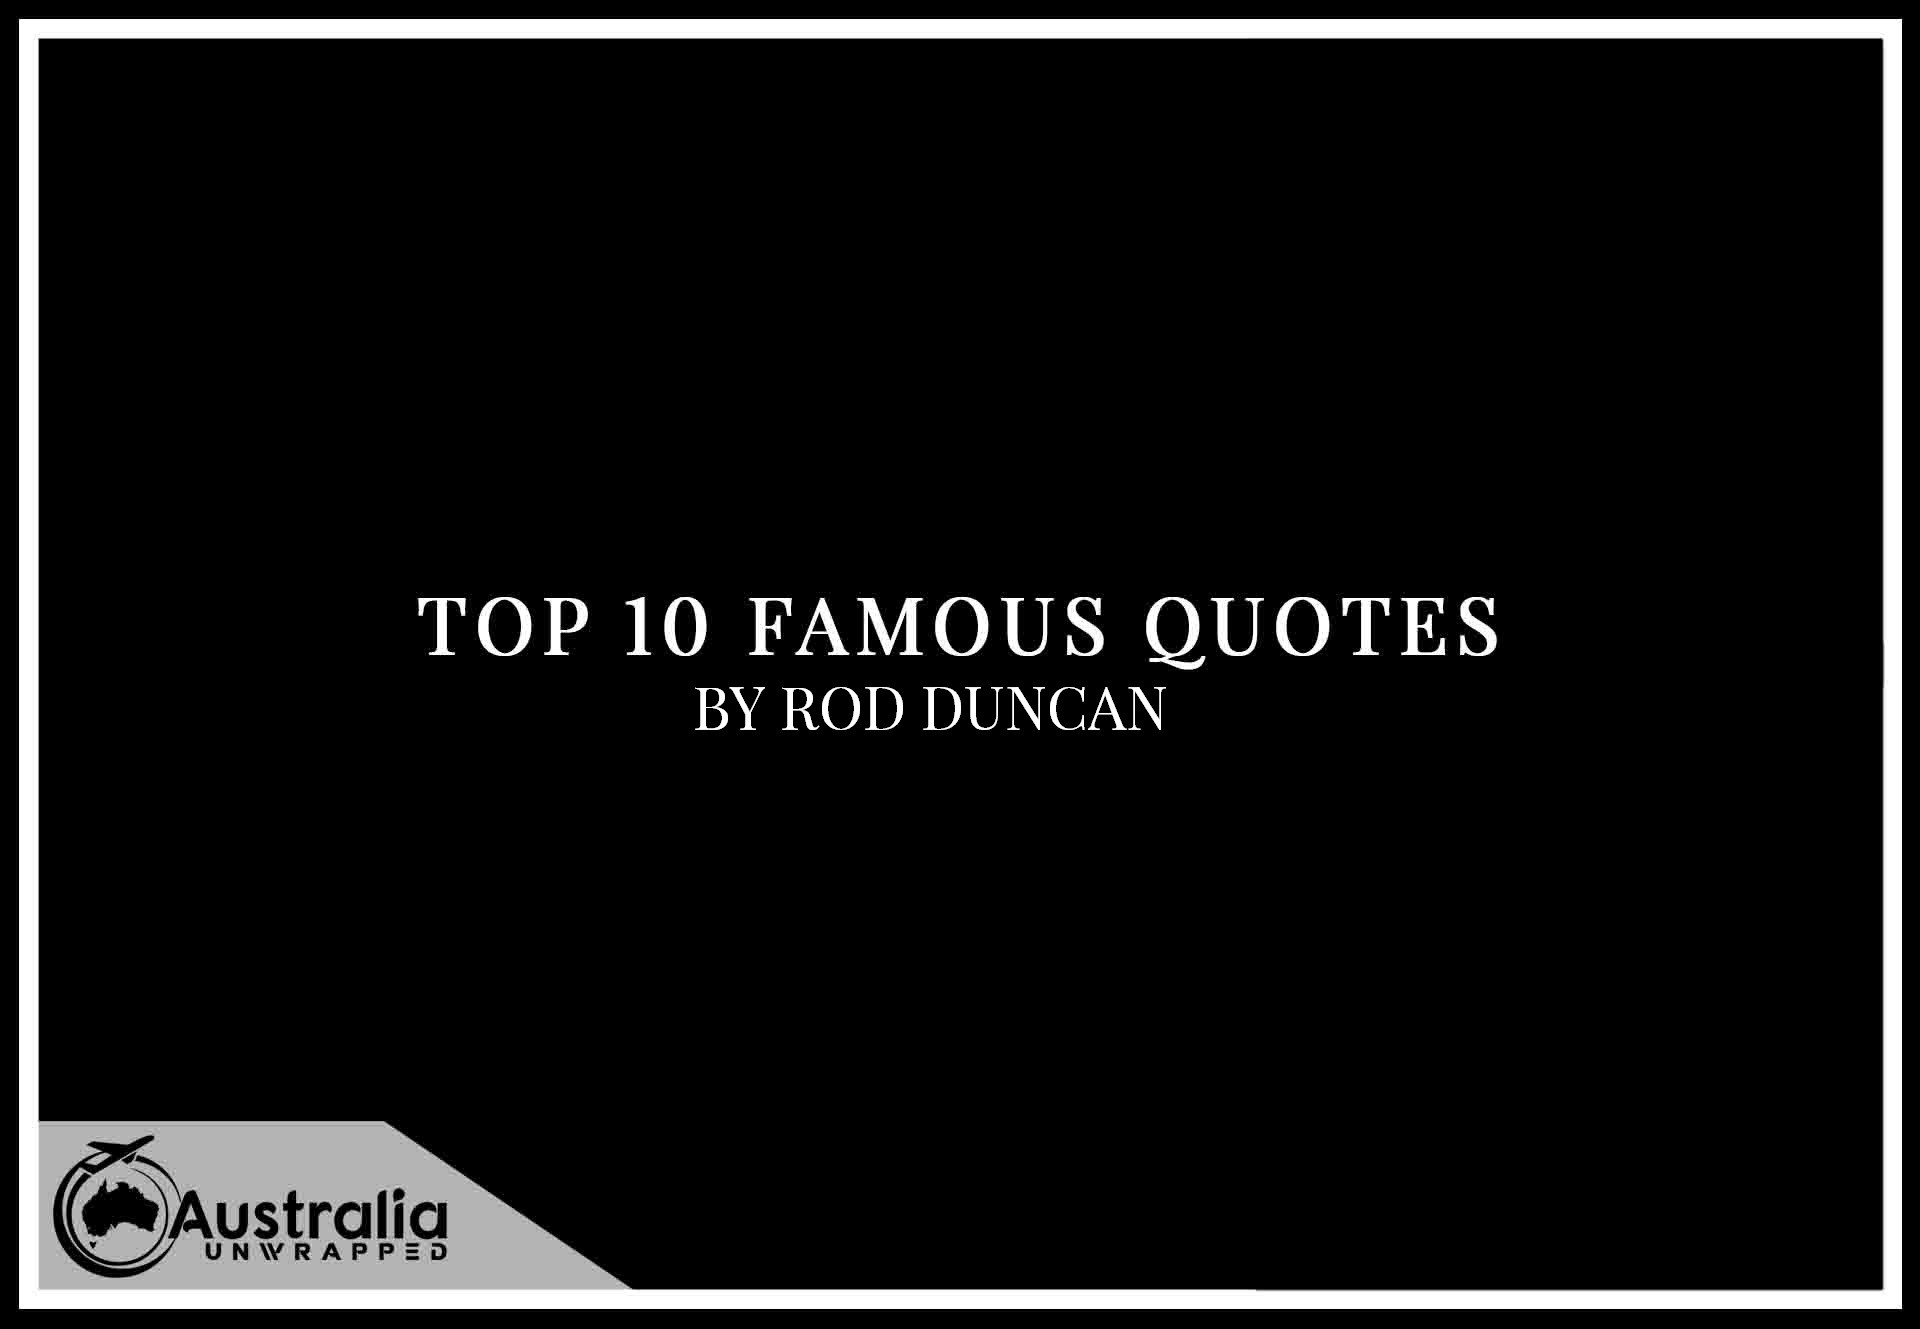 Top 10 Famous Quotes by Author Rod Duncan